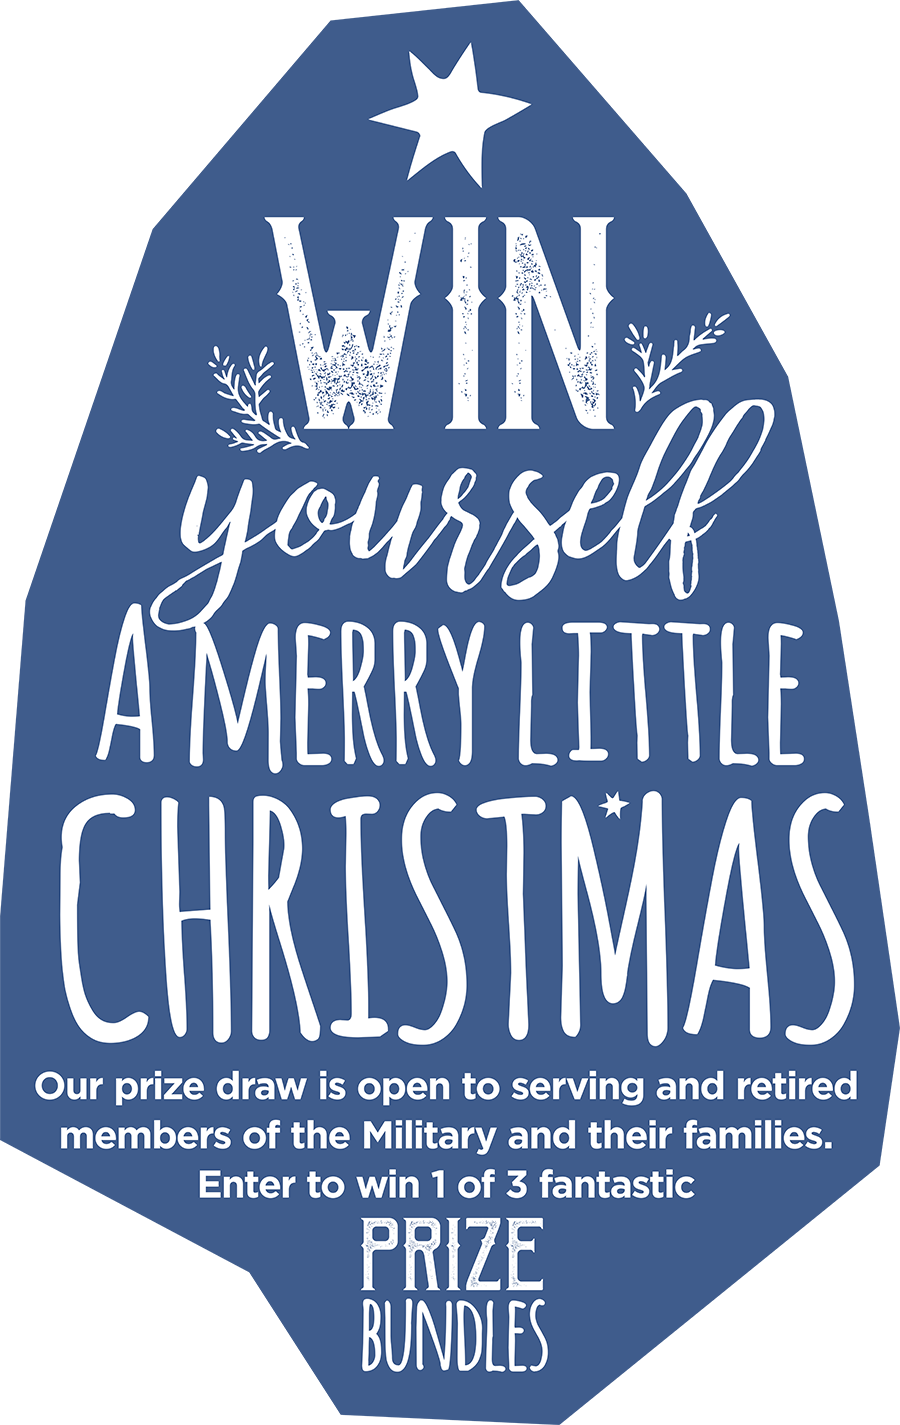 Win yourself a merry little Christmas